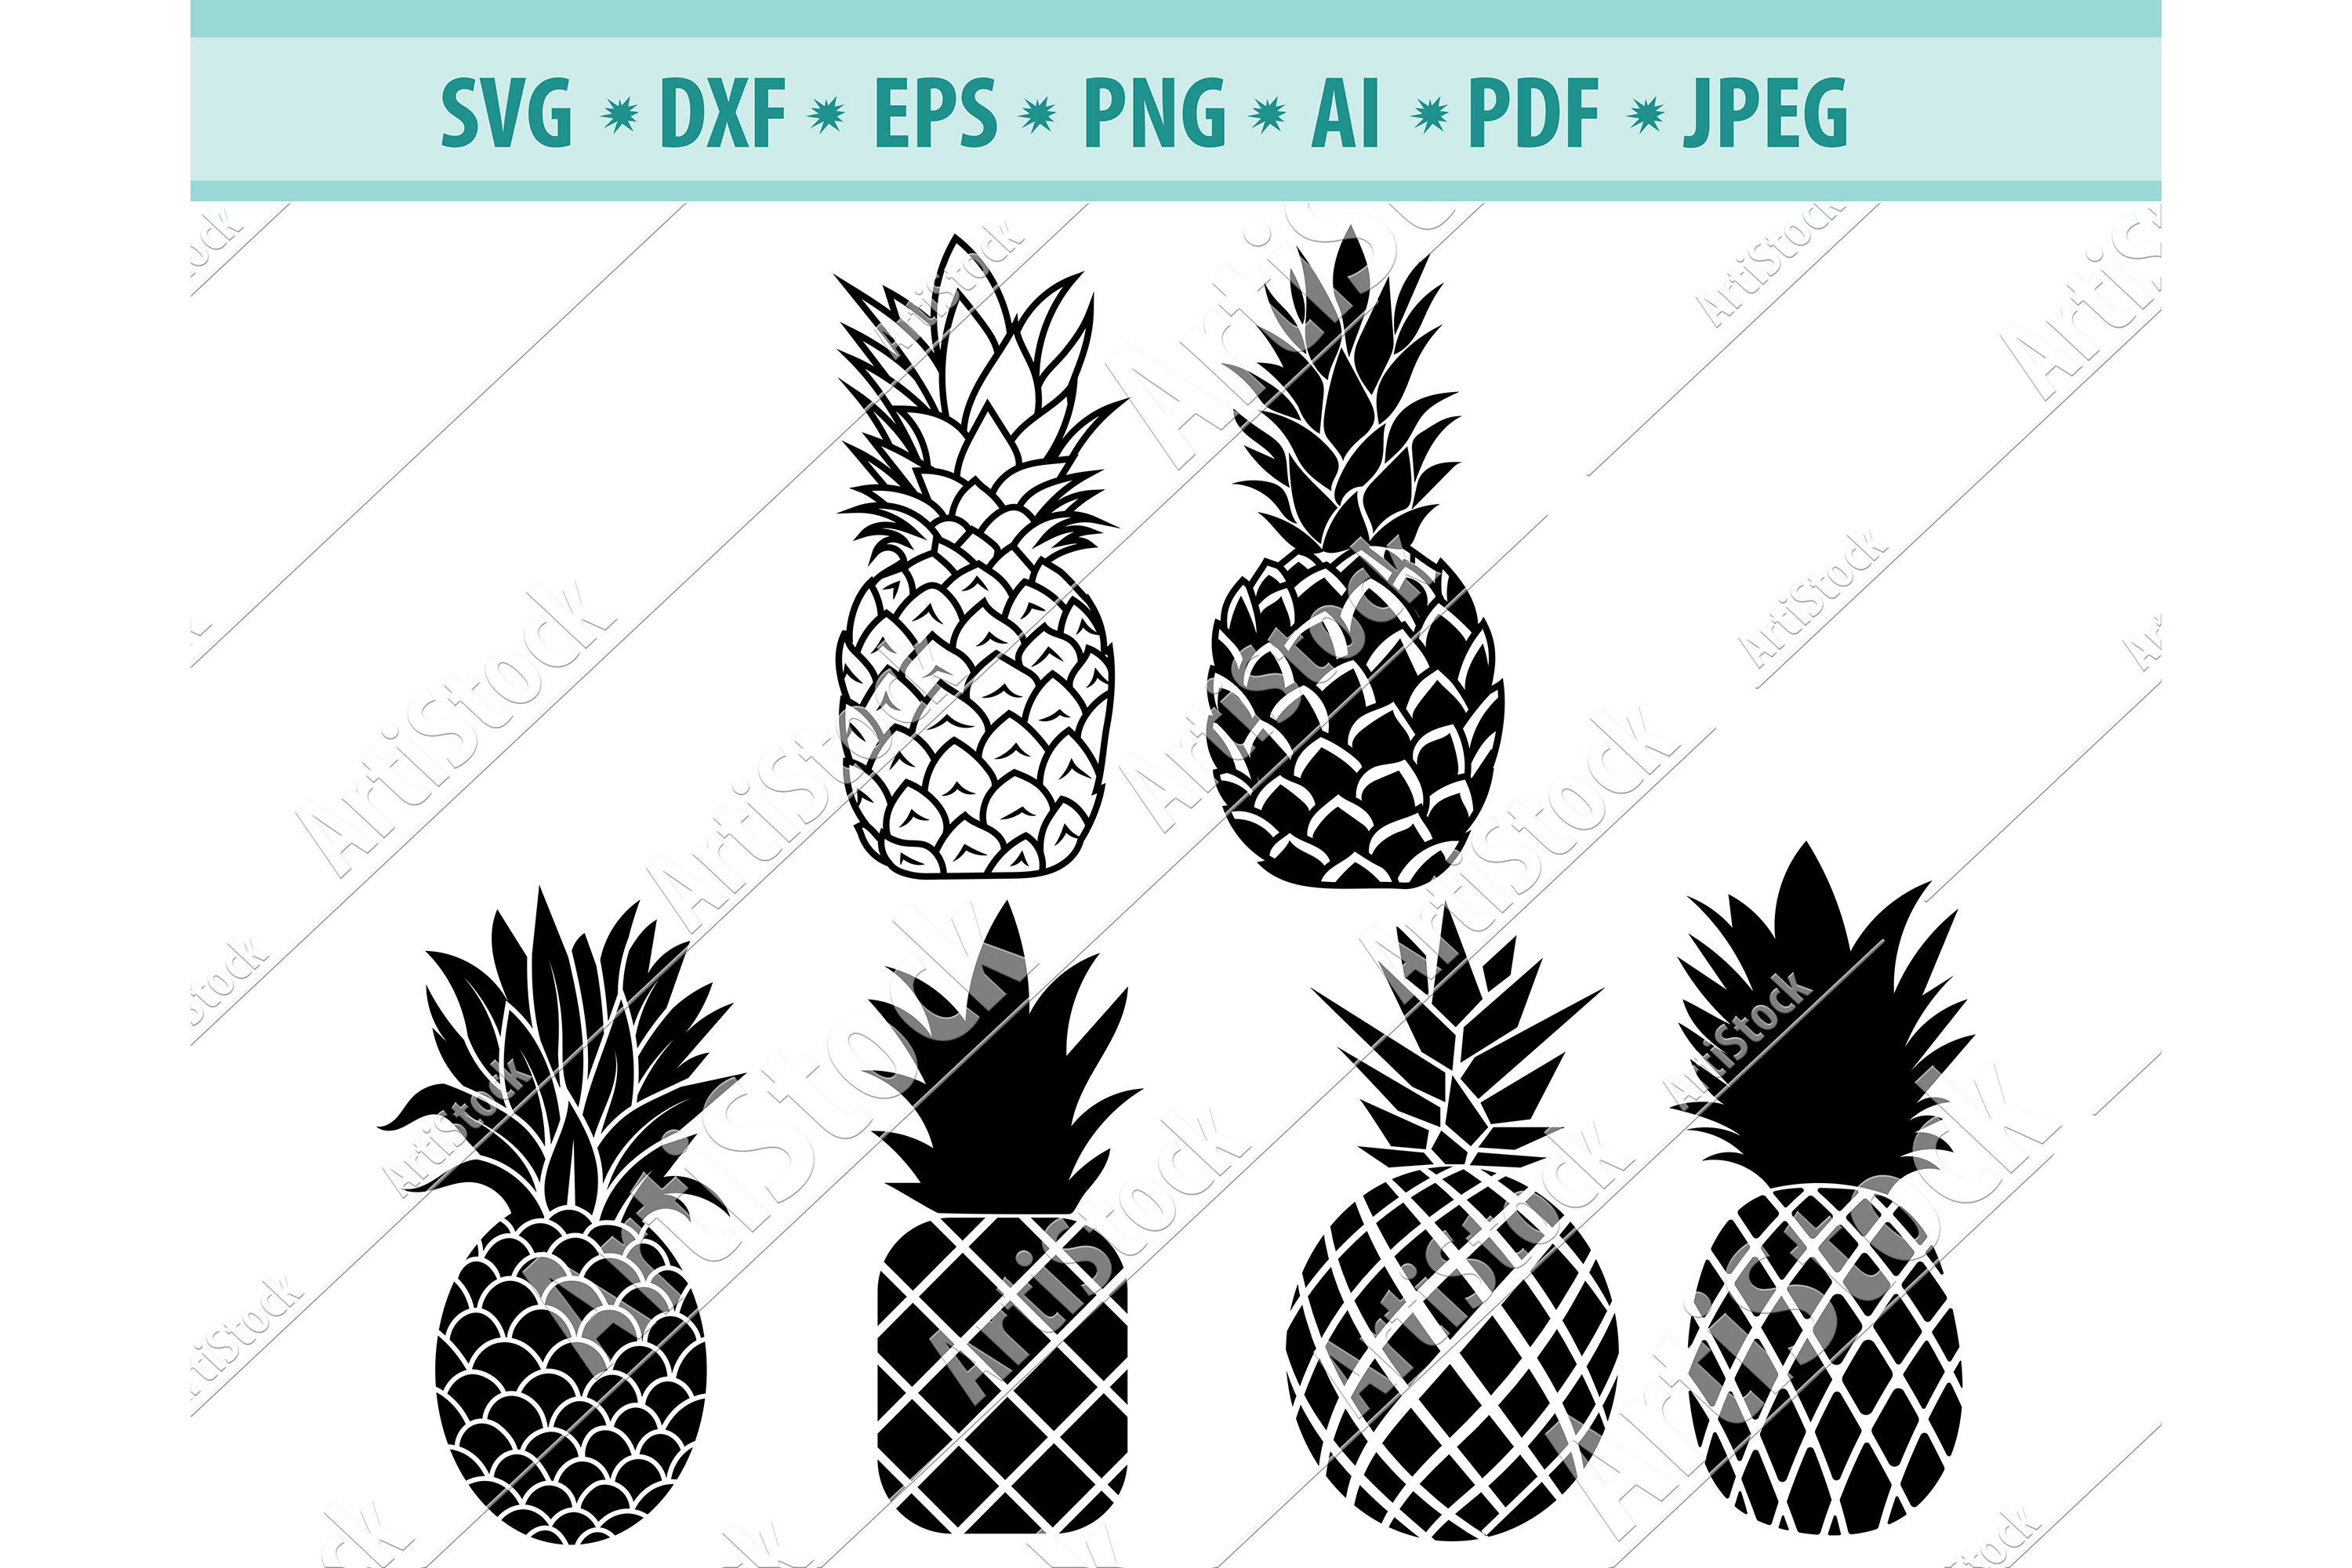 Pineapple SVG, Tropical Svg, Exotic fruit SVG, Png, Eps, Dxf example image 1